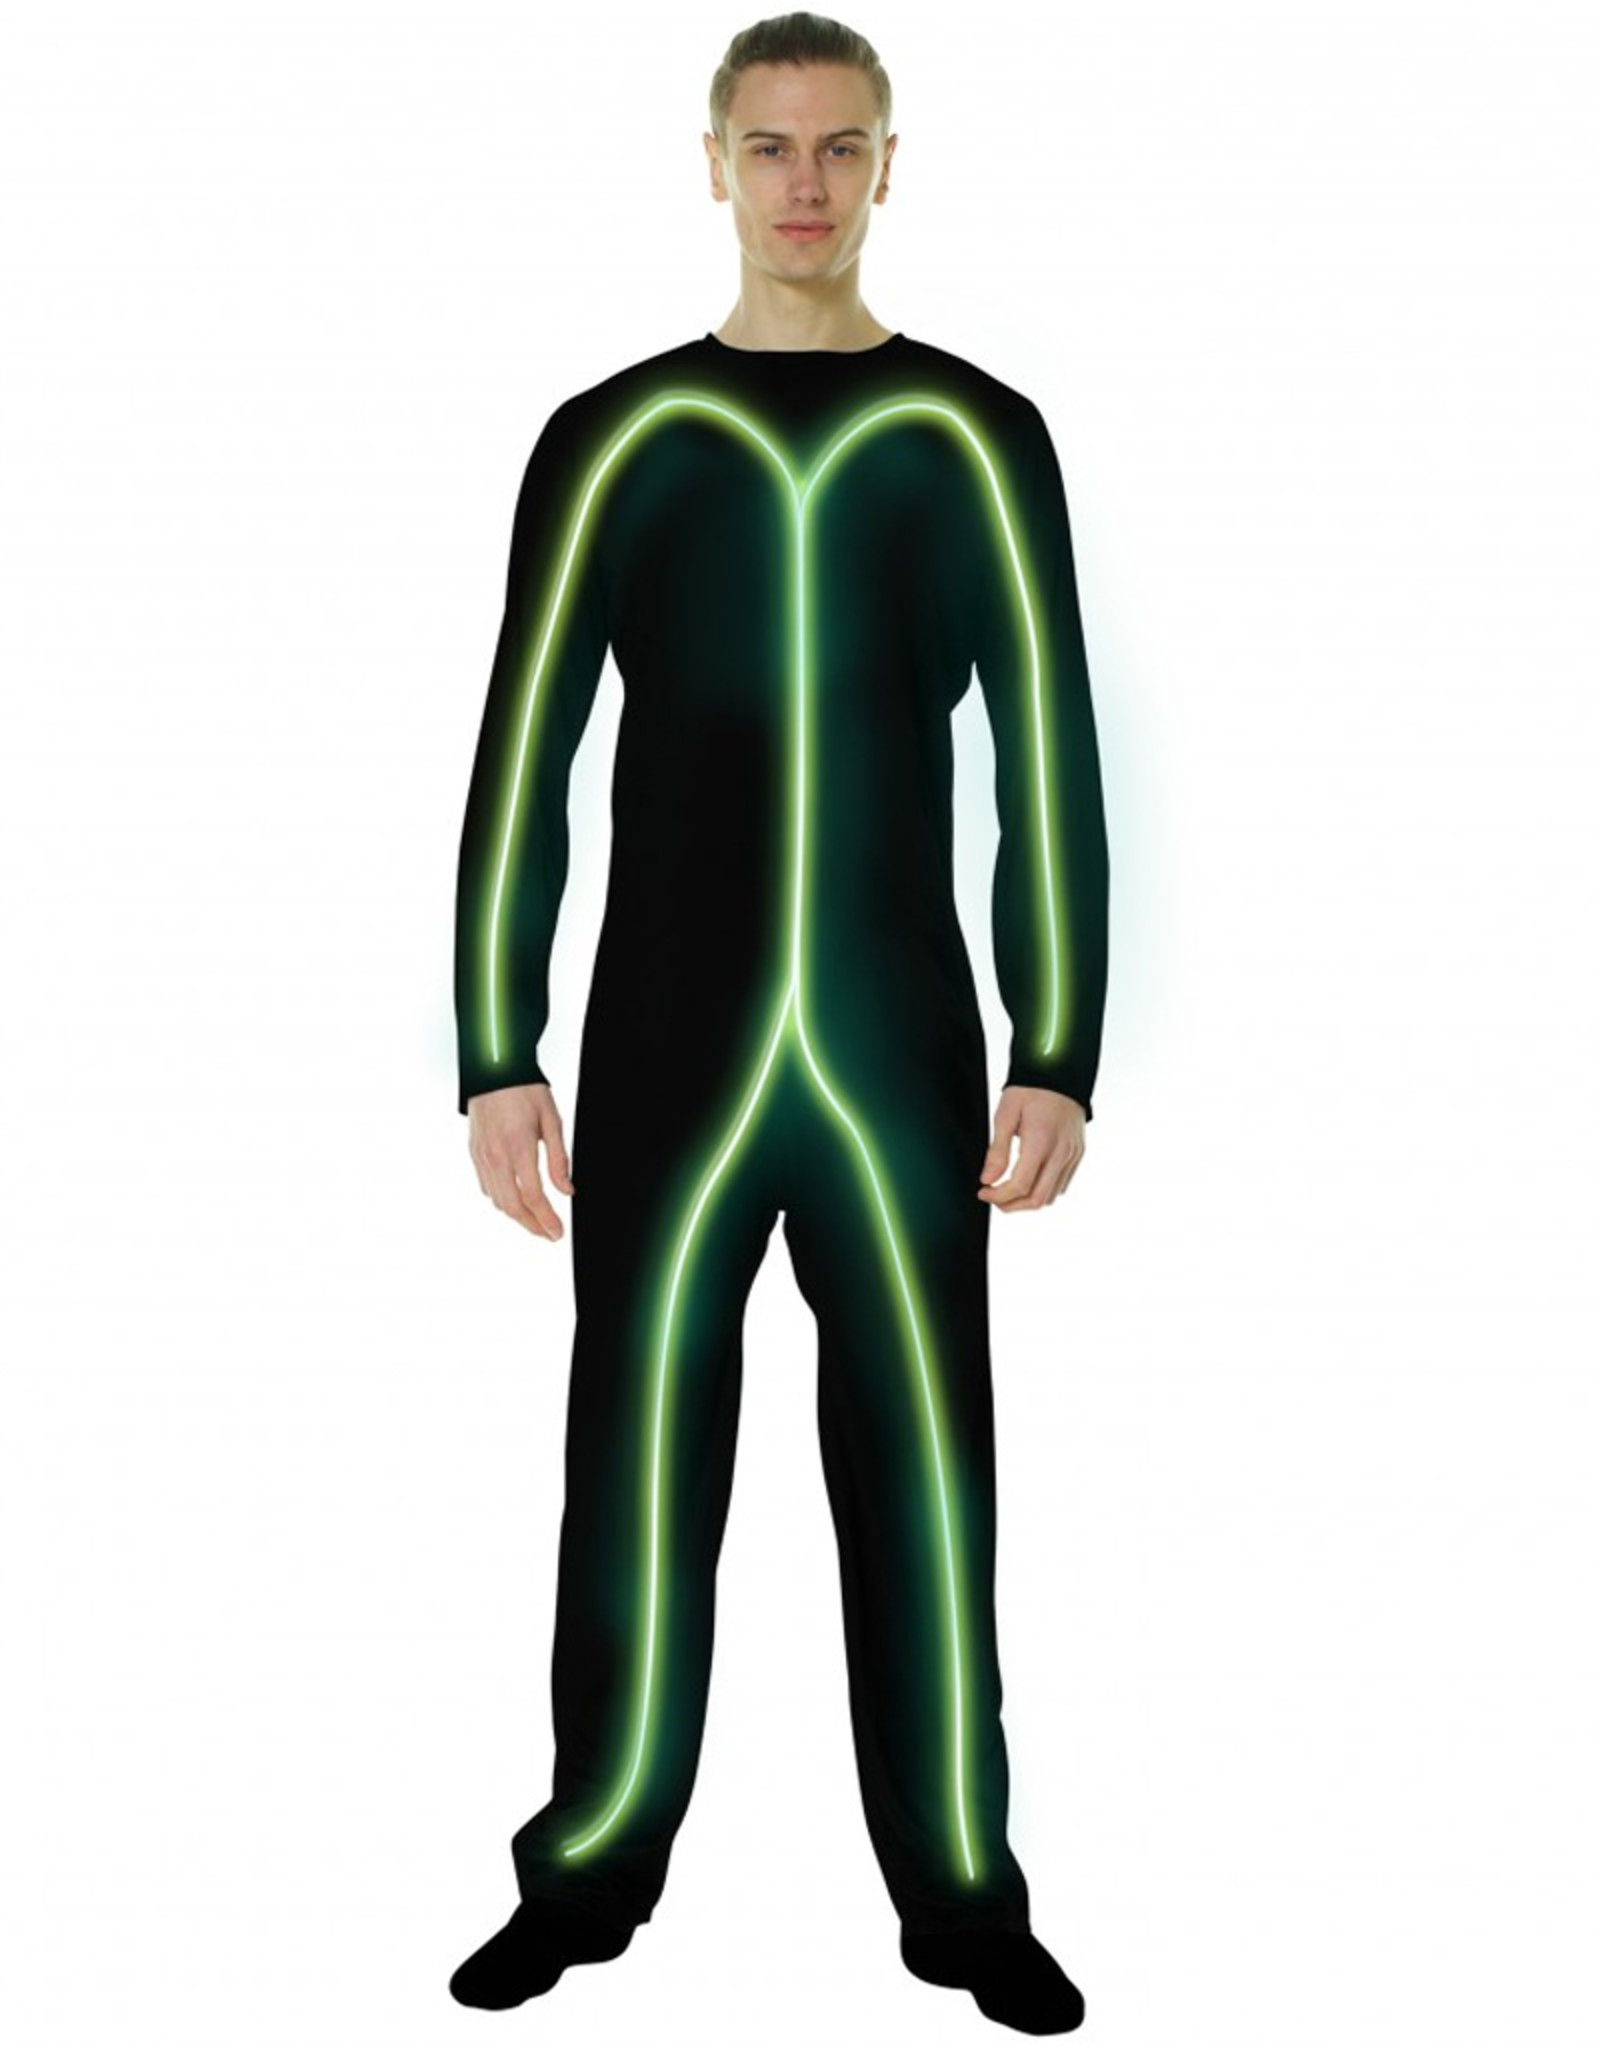 Green Glow Stick Man - Adult